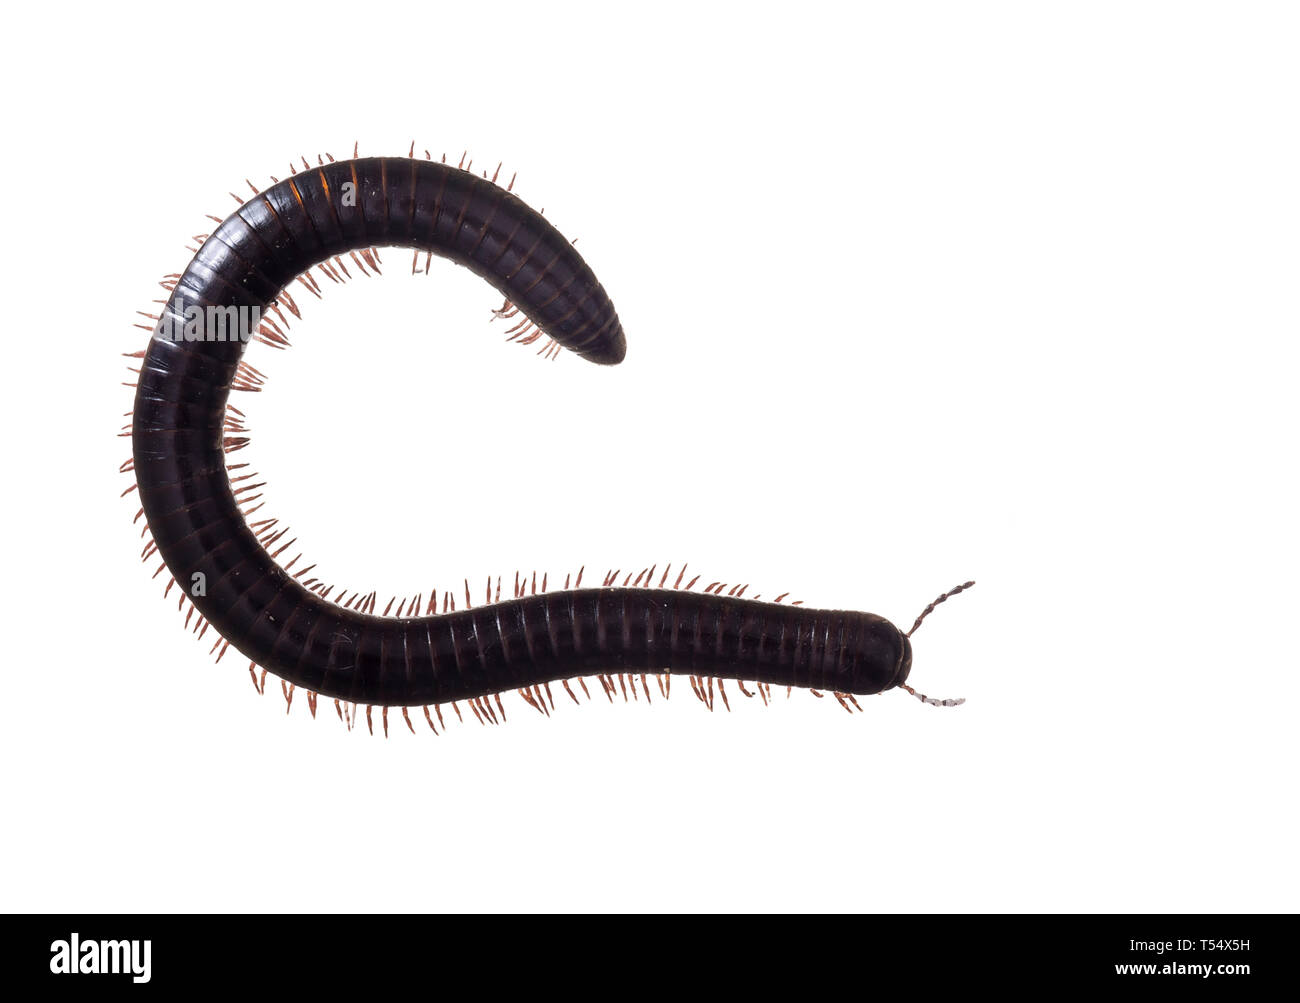 Julidae. Dark brown and orange millipede, about 7cm long, Europe. The ultimate creepy crawly. Isolated on white background. - Stock Image